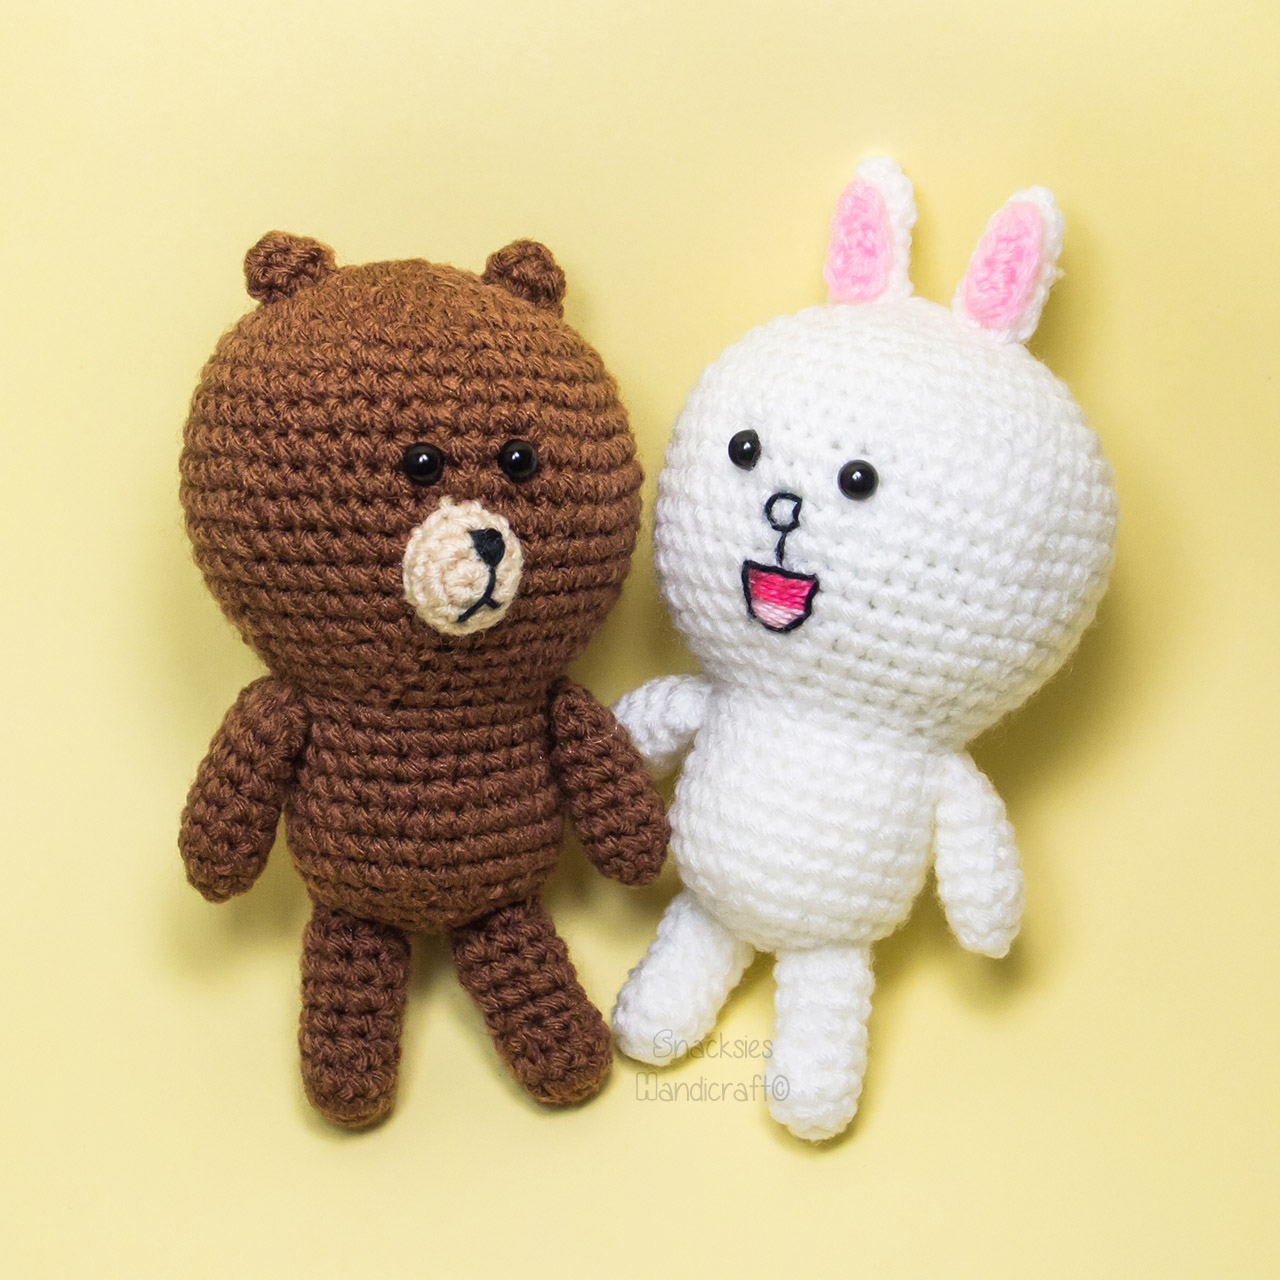 crocheted-line-cony-brown-amigurumi